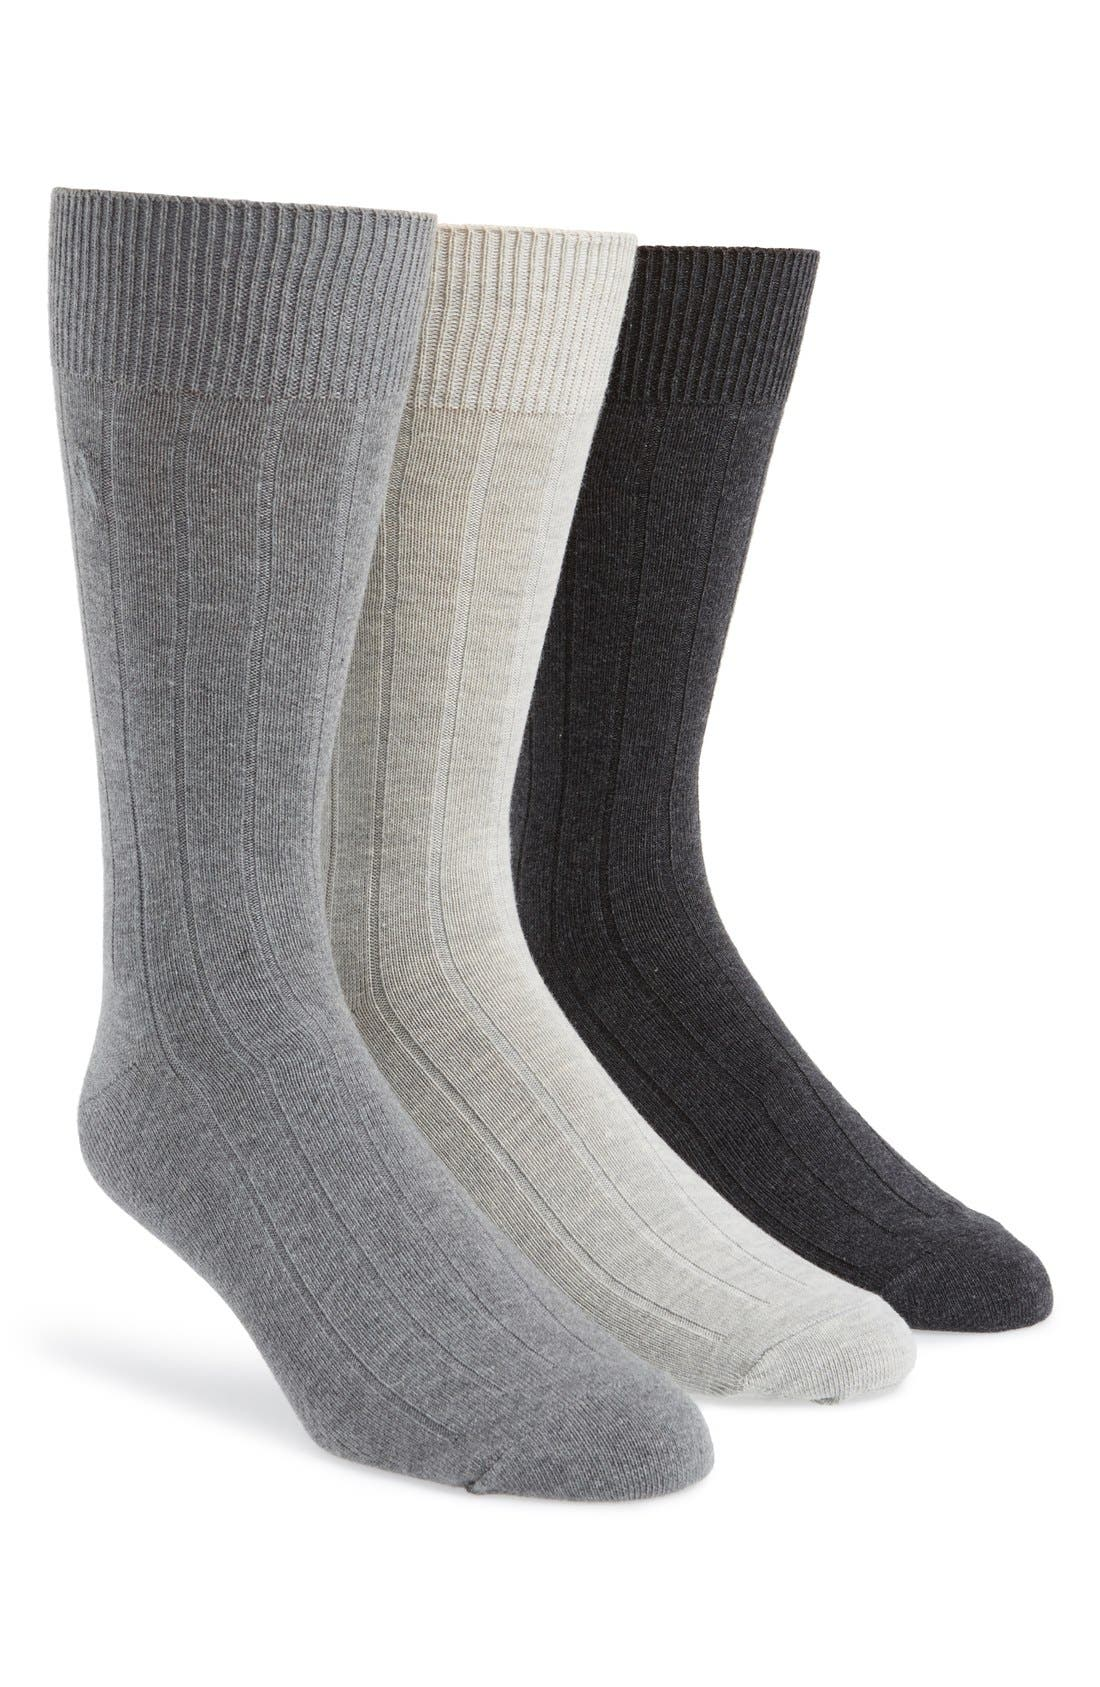 Alternate Image 1 Selected - Polo Ralph Lauren 3-Pack Crew Socks